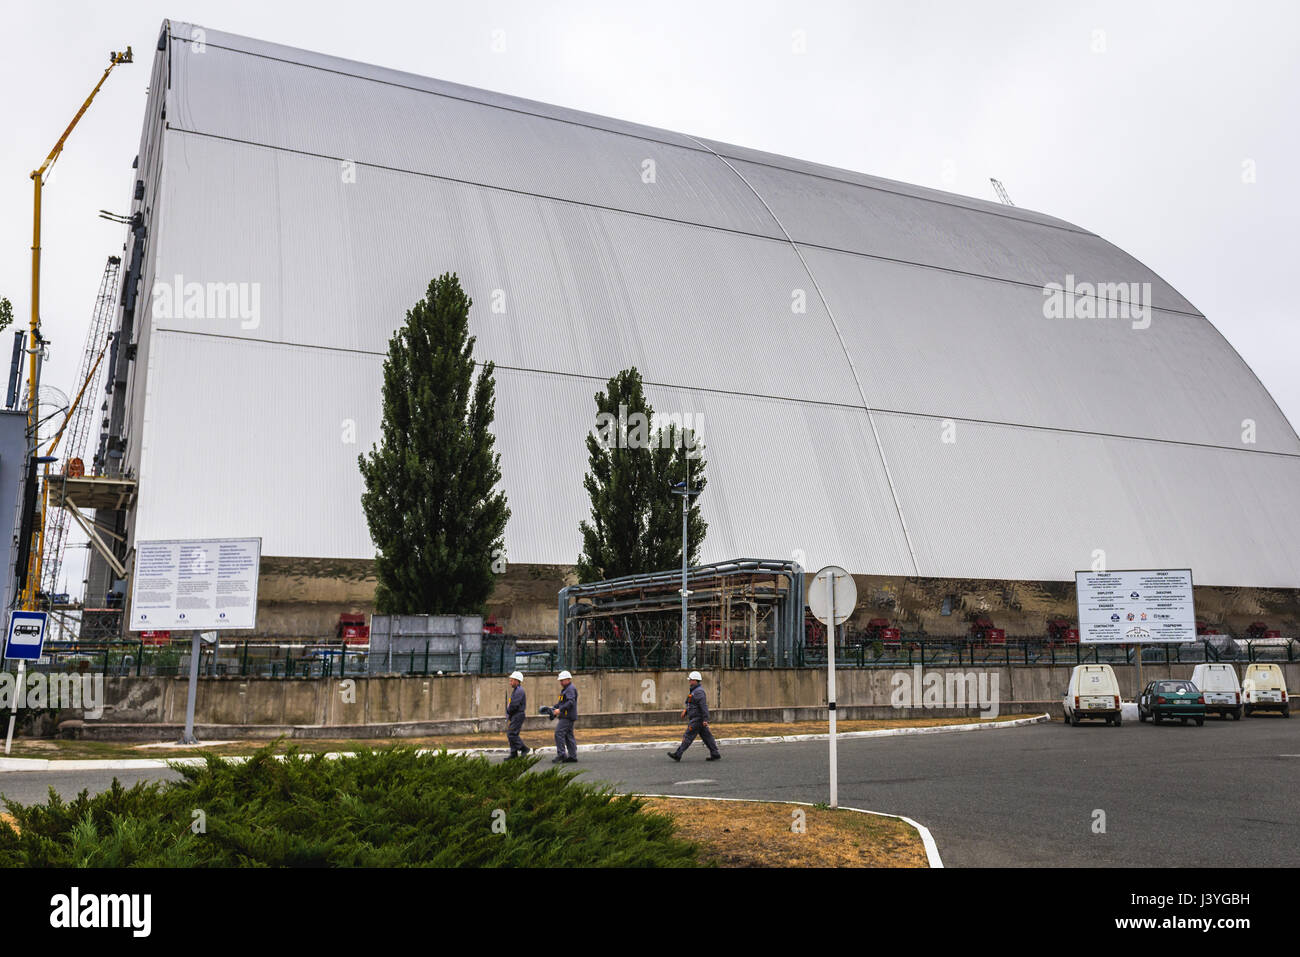 New Safe Confinement structure for reactor No. 4 of Chernobyl Nuclear Power Plant, Zone of Alienation in Ukraine - Stock Image